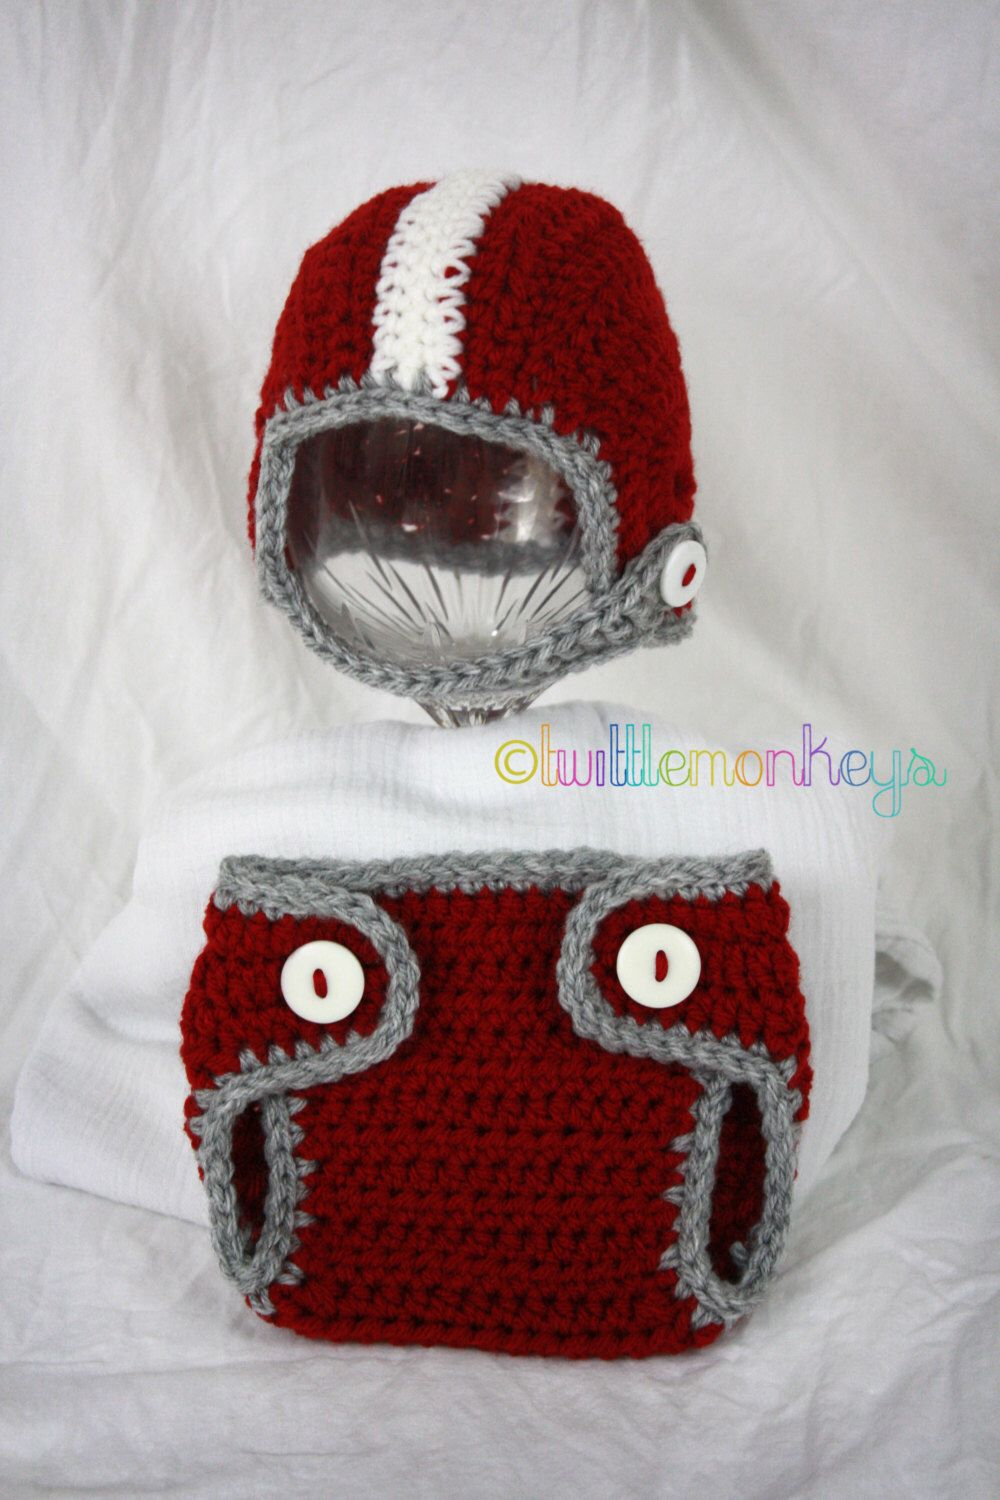 Newborn crochet football helmetdiaper cover set university of newborn crochet football helmetdiaper cover set university of alabama bama crimson bankloansurffo Choice Image